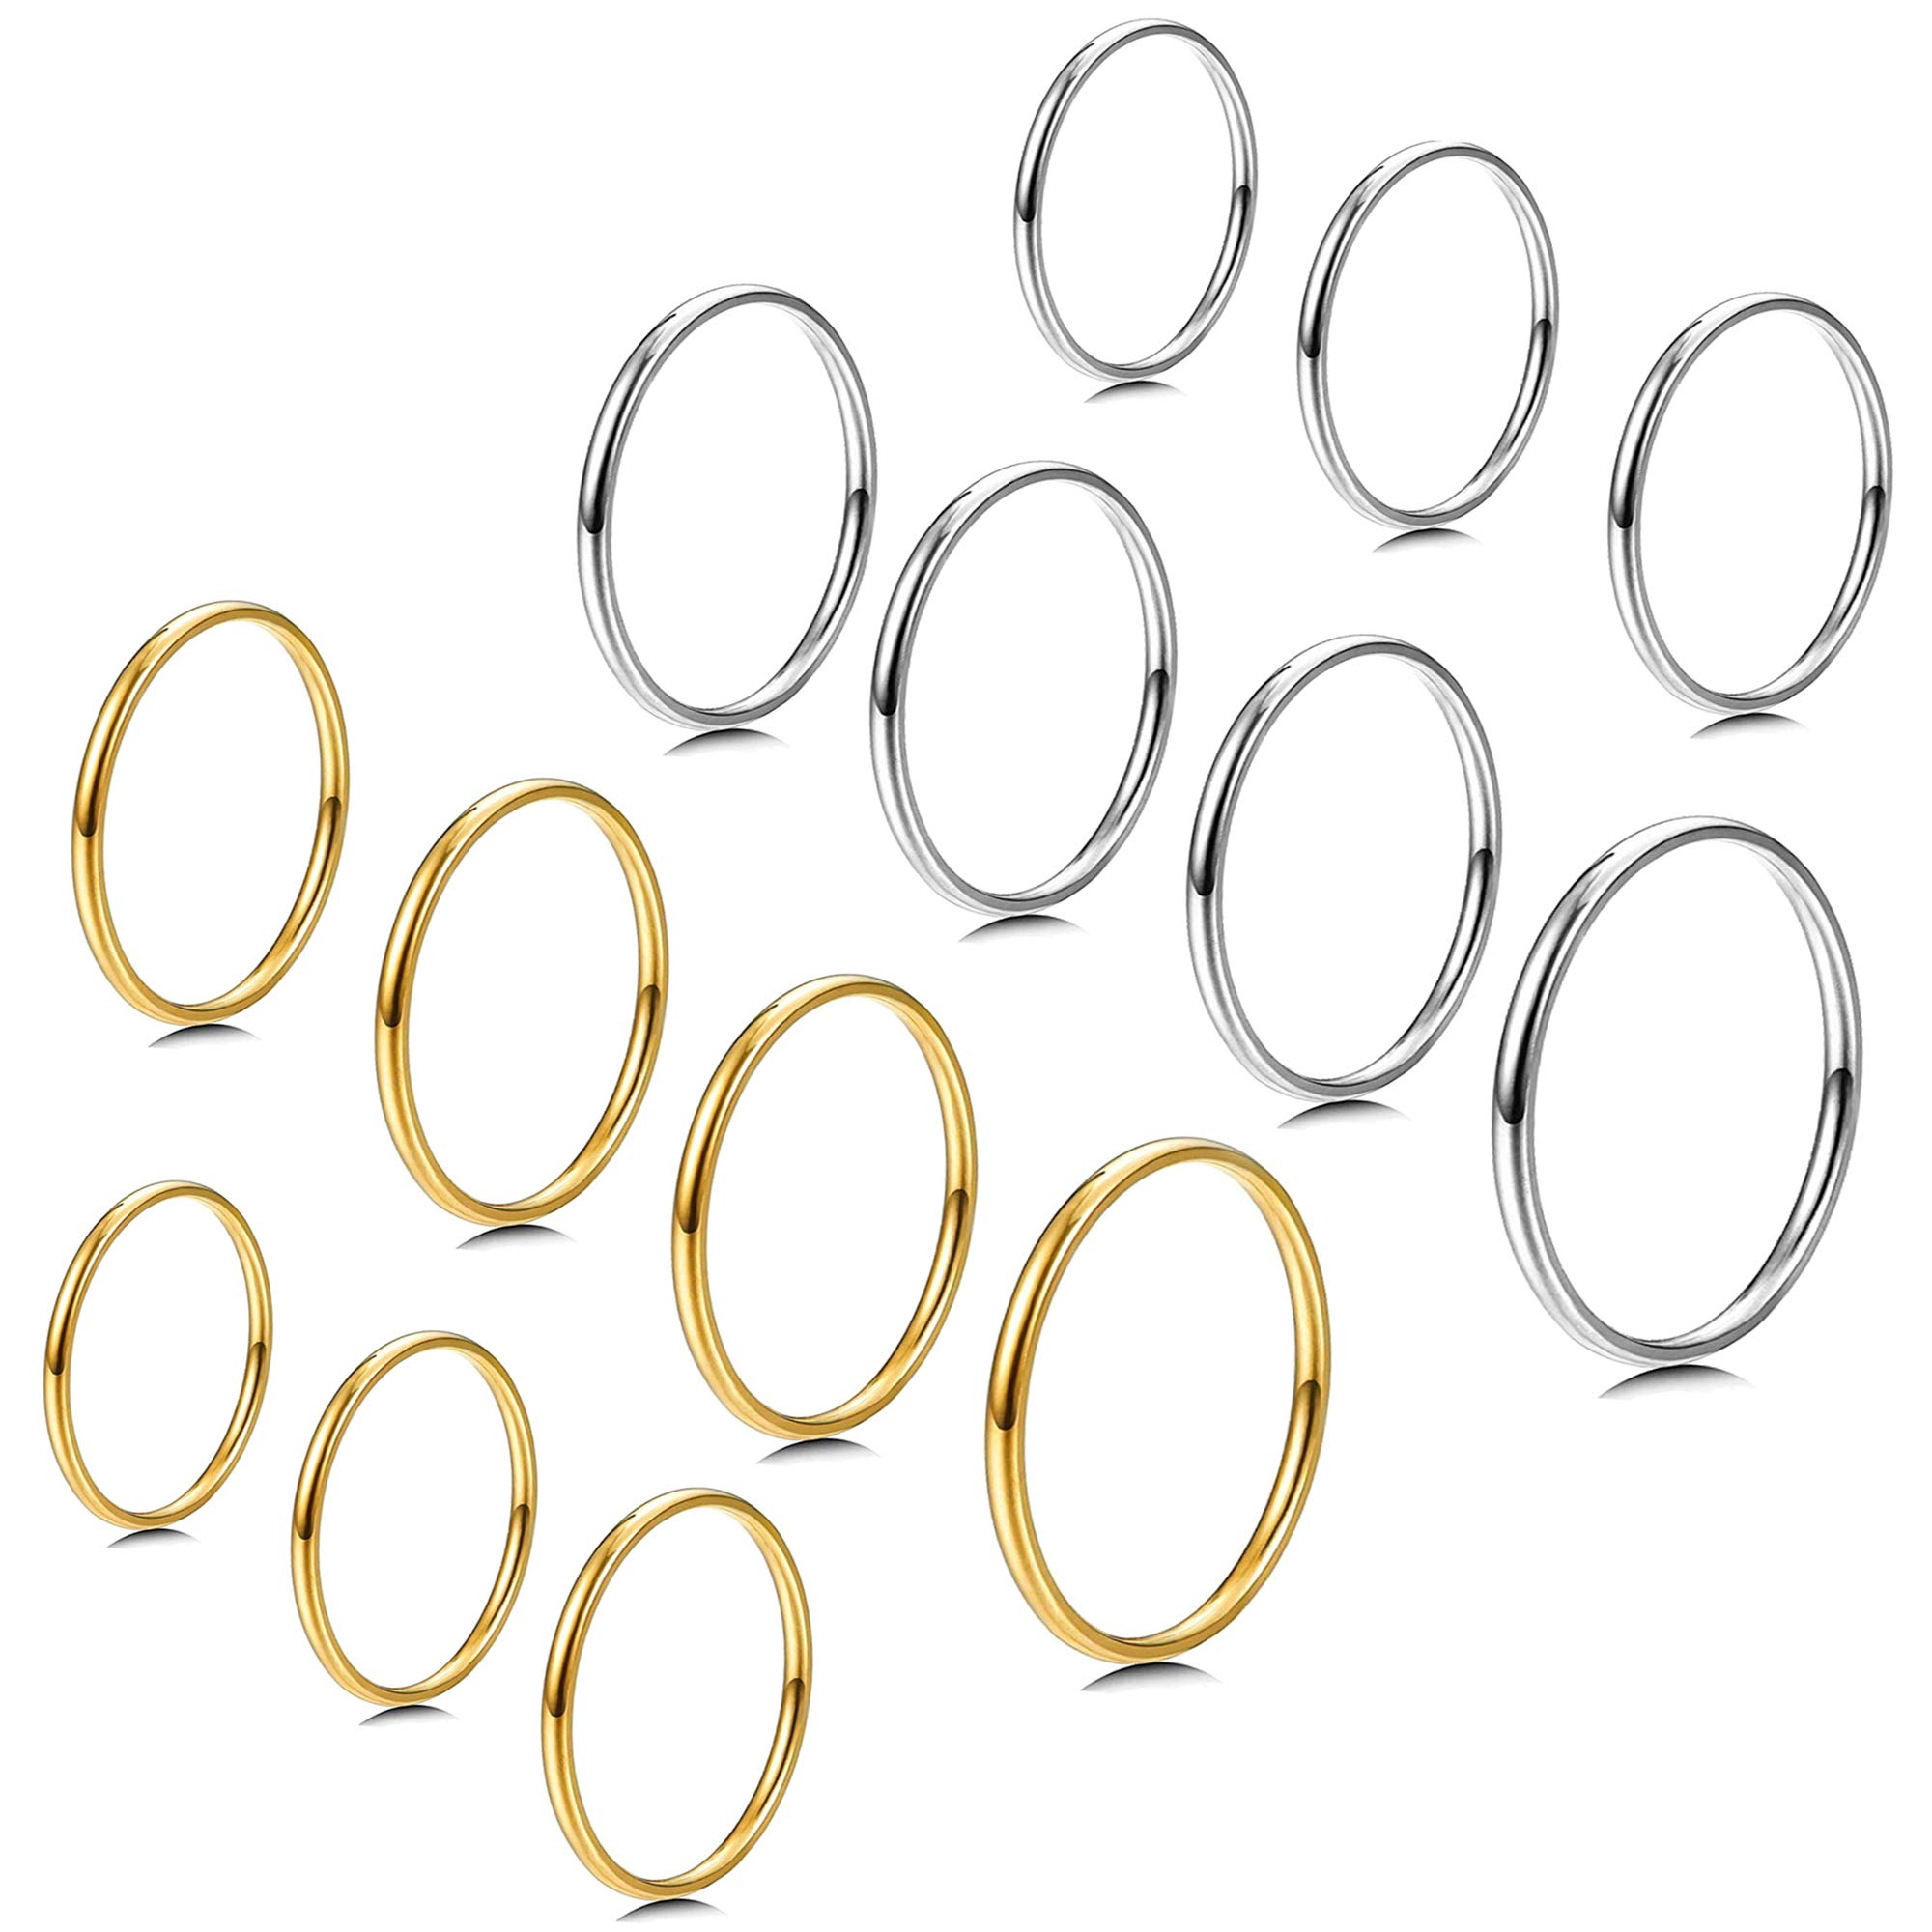 Milacolato 7-14 PCS 1MM Stainless Steel Band Knuckle Stacking Rings for Women Girls Fashion Midi Rings Comfort Fit Size 3-9 by Milacolato